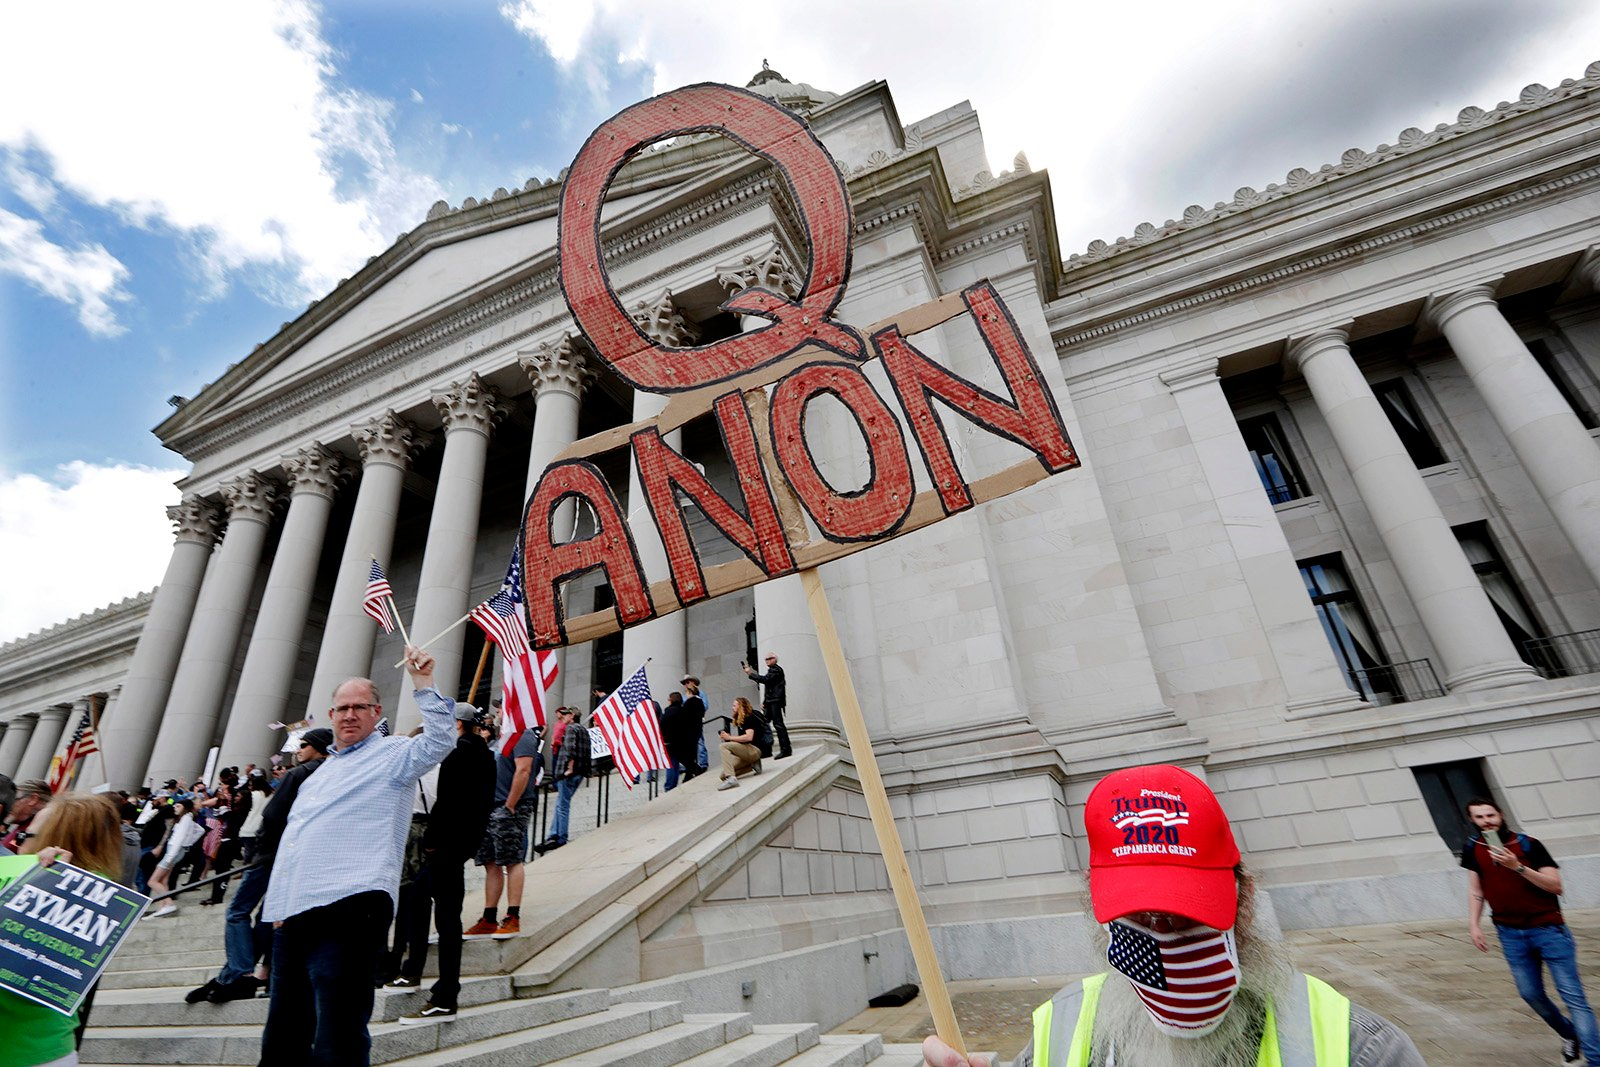 """A demonstrator holds a QAnon sign as he walks at a protest opposing Washington state's stay-at-home order to slow the coronavirus outbreak April 19, 2020, in Olympia, Washington. Washington Gov. Jay Inslee had blasted President Donald Trump's calls to """"liberate"""" parts of the country from stay-at-home and other orders designed to combat the spread of the coronavirus. Inslee said Trump was fomenting a potentially deadly """"insubordination"""" among his followers before the pandemic is contained. (AP Photo/Elaine Thompson)"""